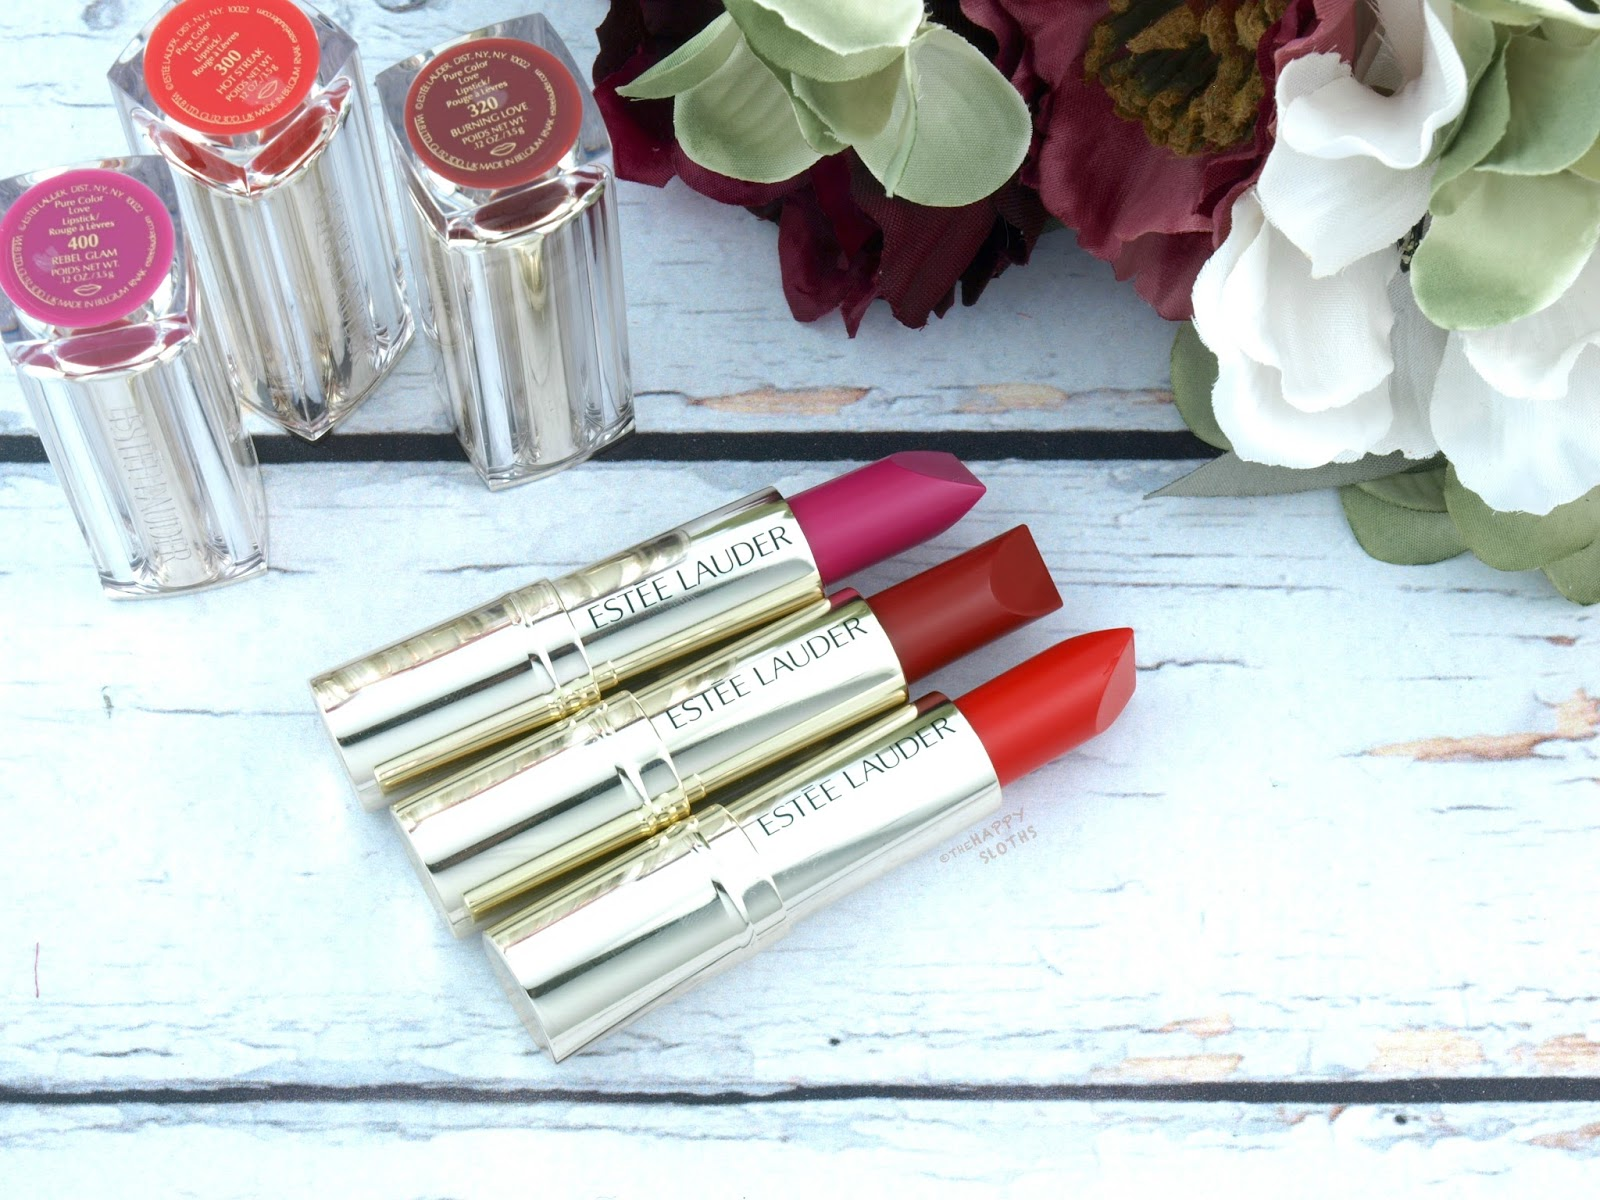 Estee Lauder Pure Color Love Lipstick: Review and Swatches